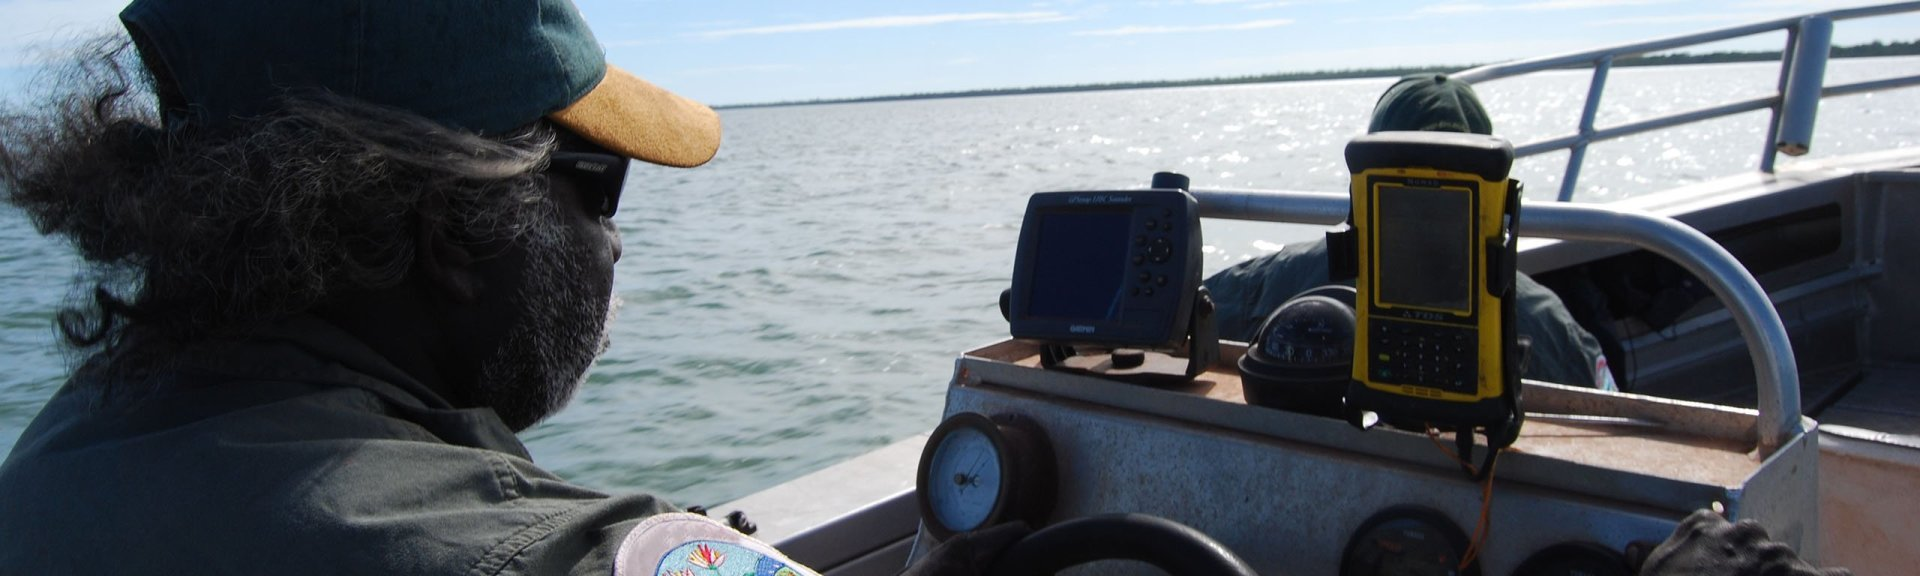 Indigenous ranger on a boat. Project Djelk.